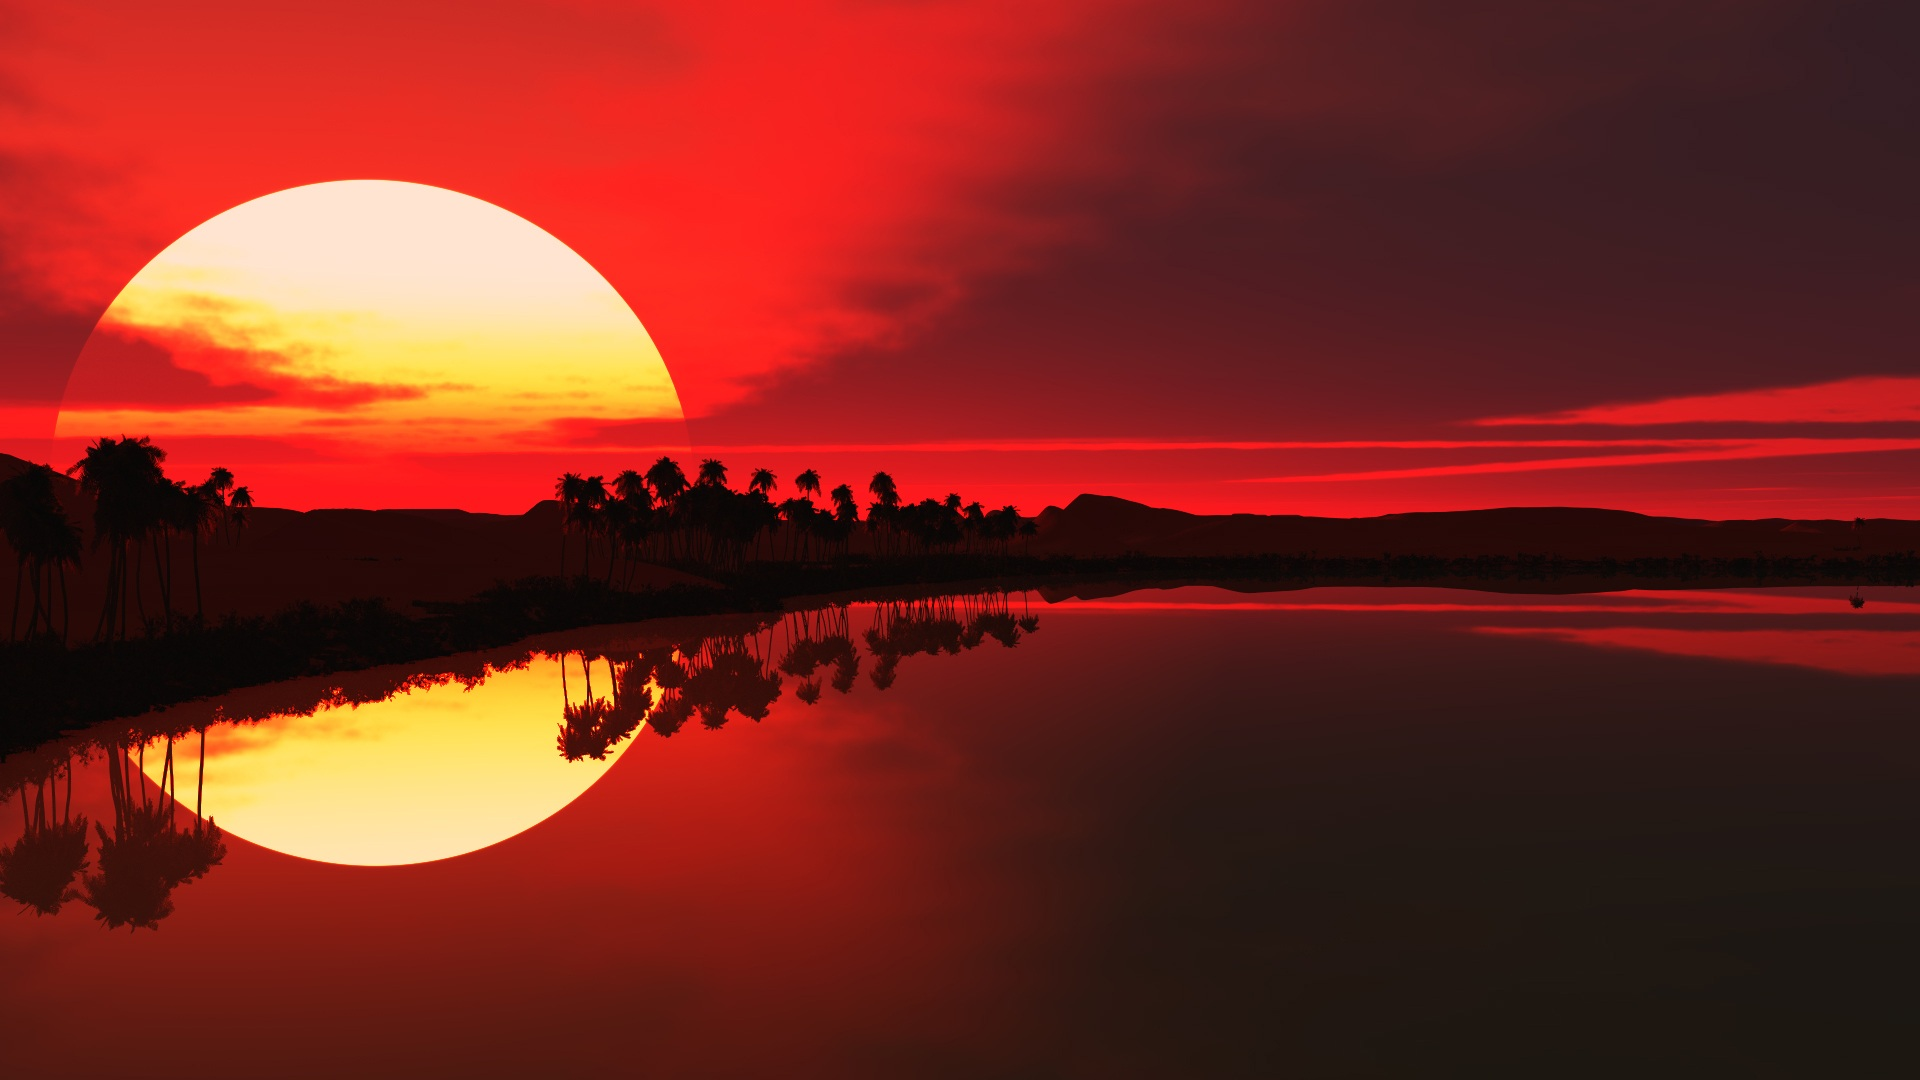 sunset wallpaper hd HD 1920x1080